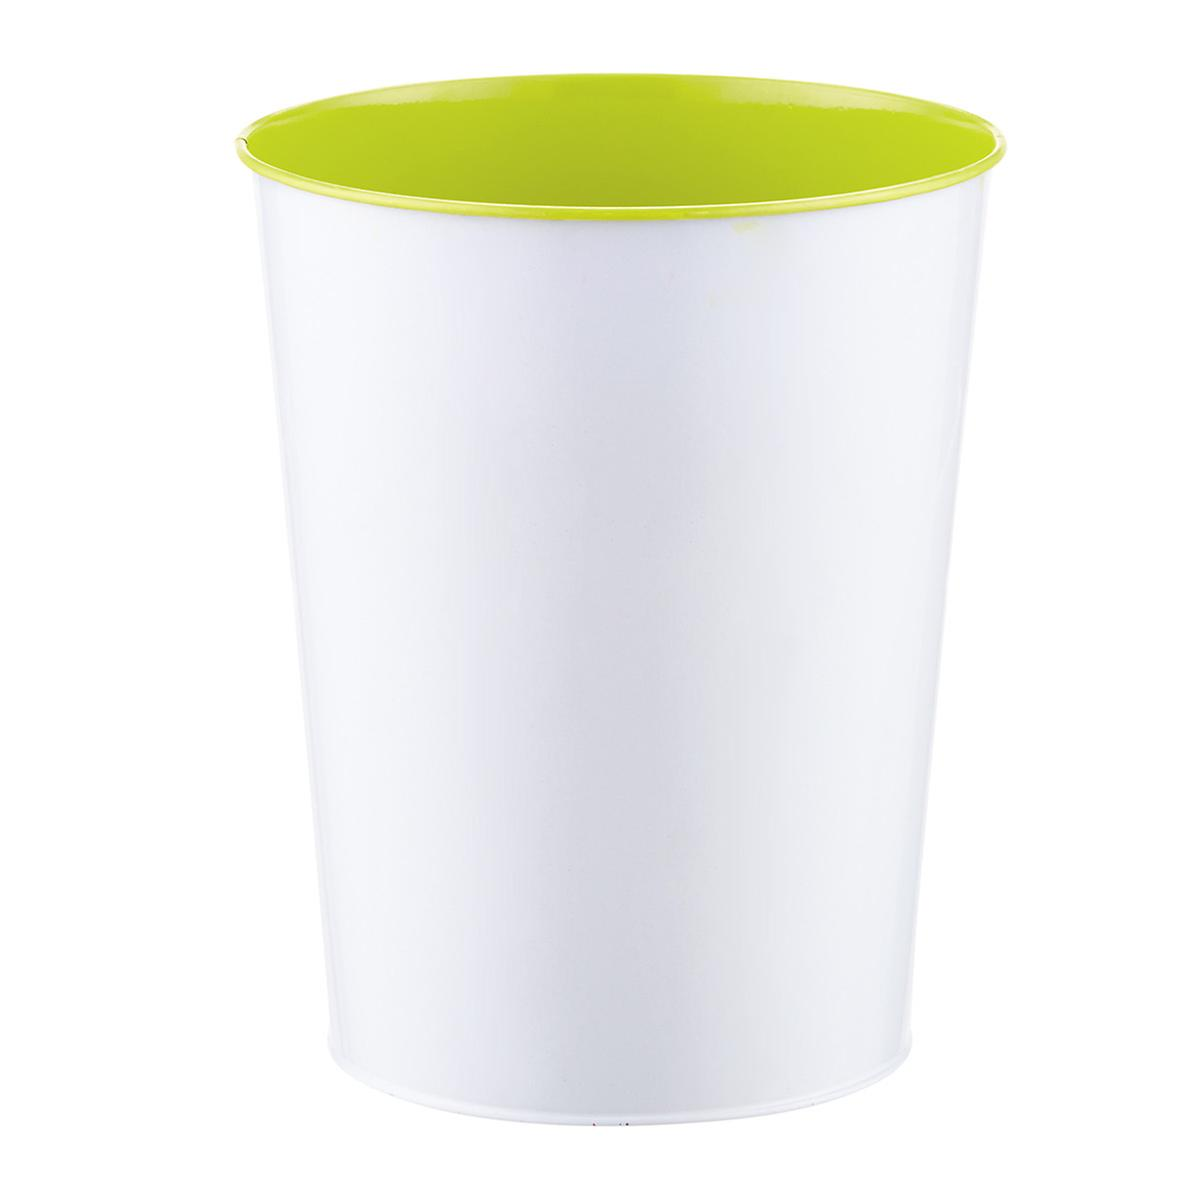 Three by Three Lime Green Vivid Metal Wastebasket